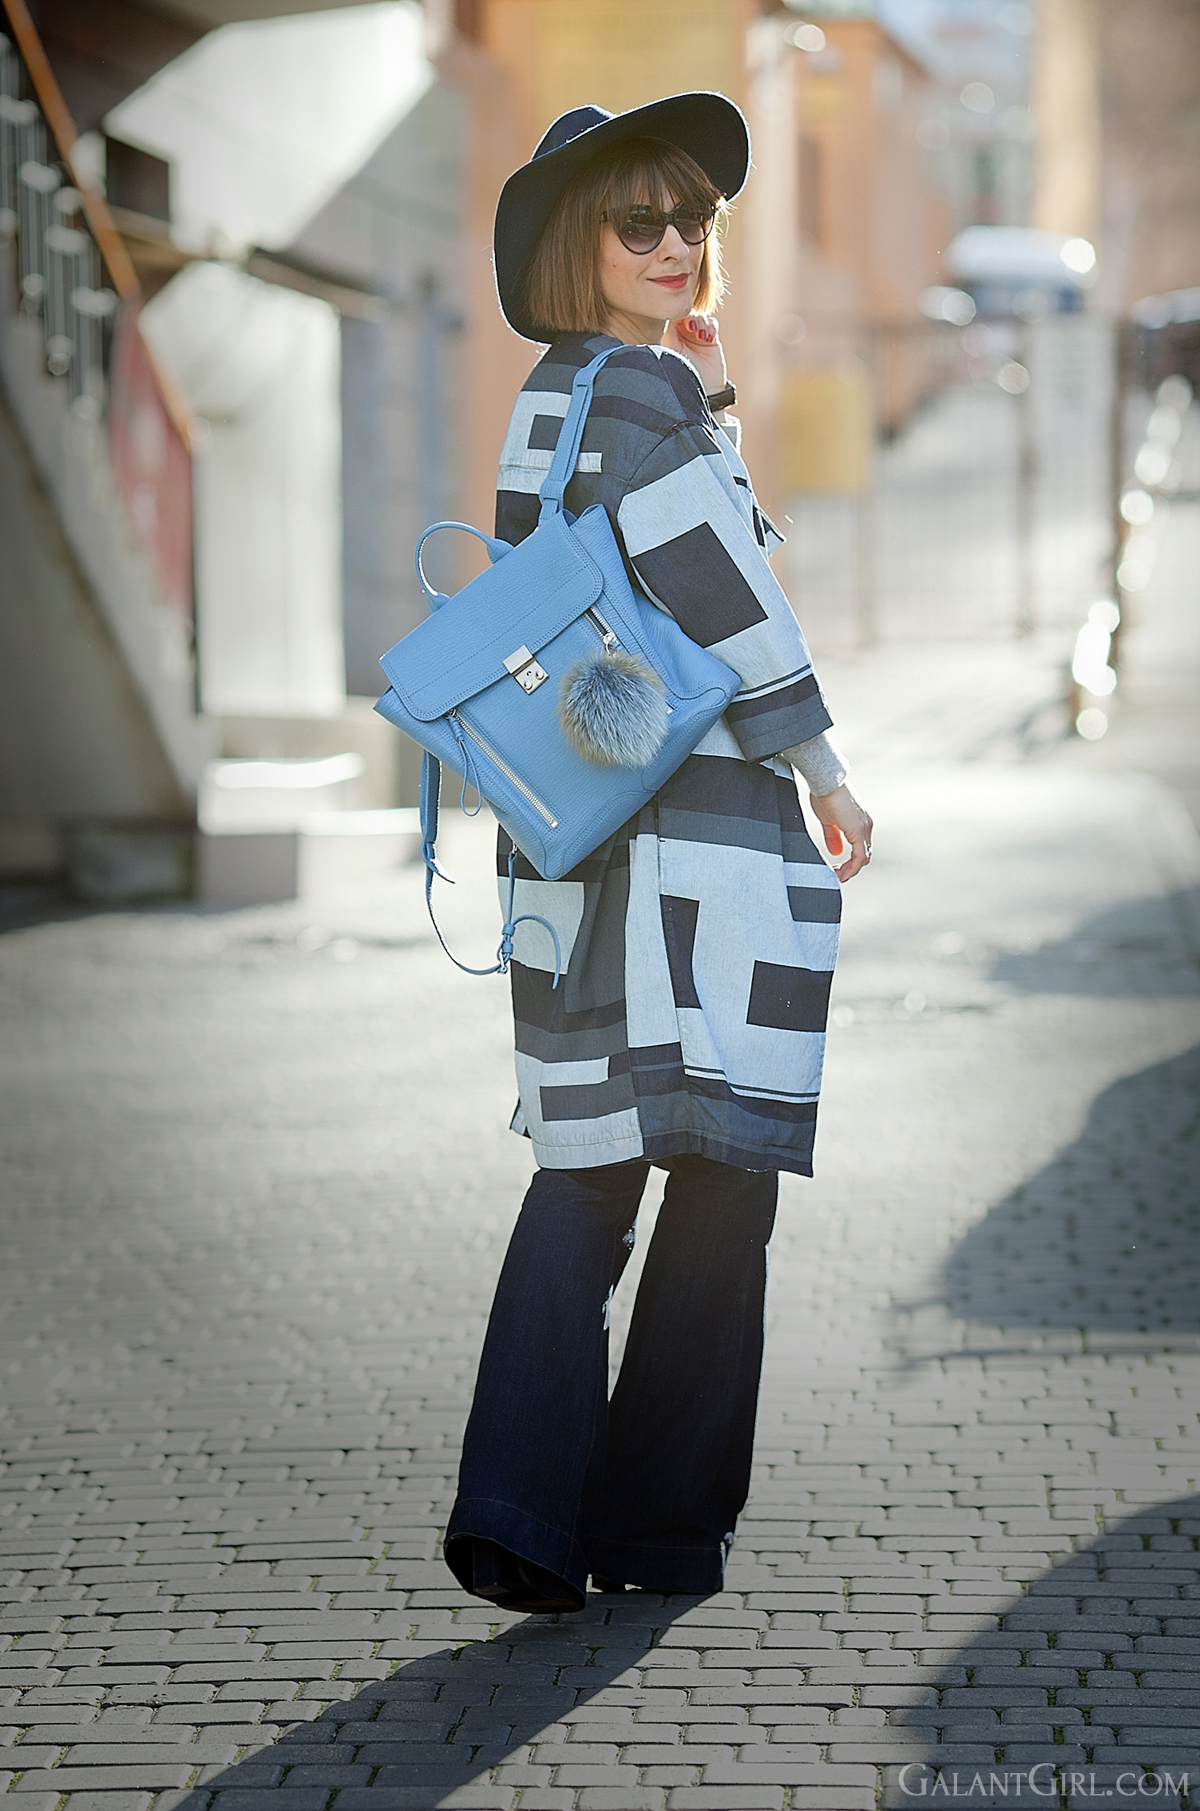 ASOS WHITE Denim Printed Panelled Coat and 3.1 Phillip Lim blue Pashli backpack on GalantGirl.com